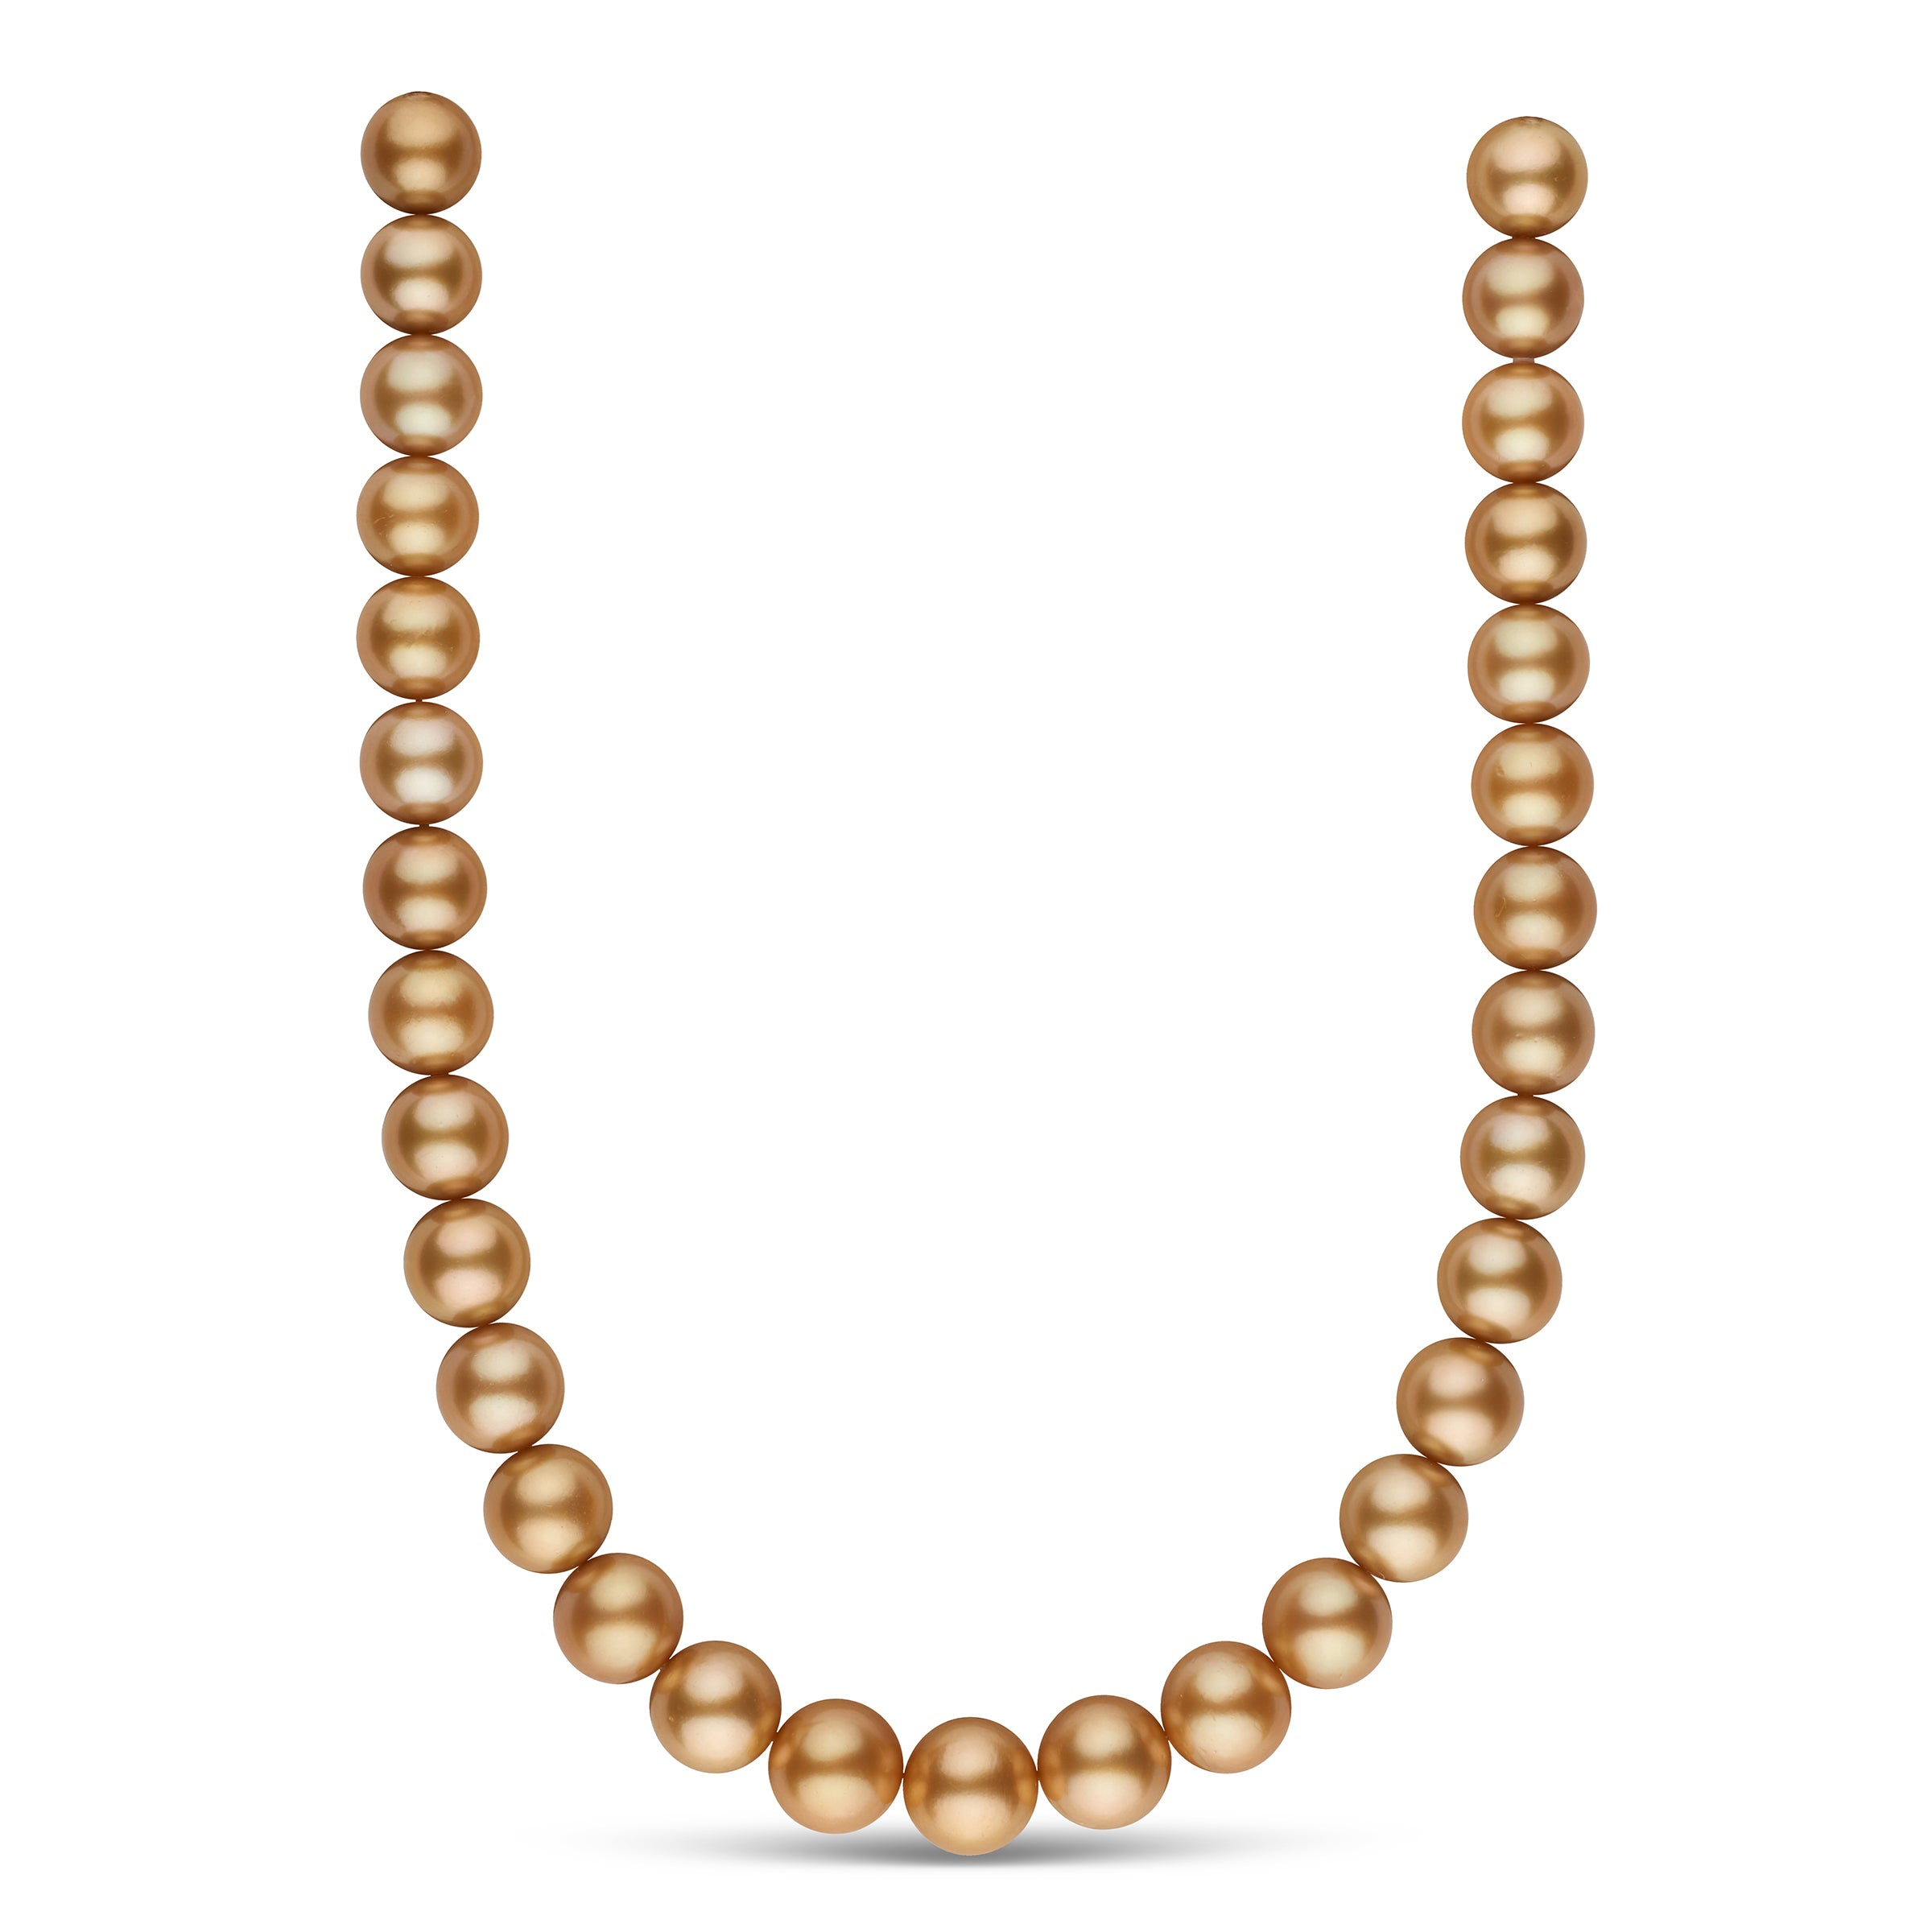 The Golden Globes Golden South Sea Pearl Necklace